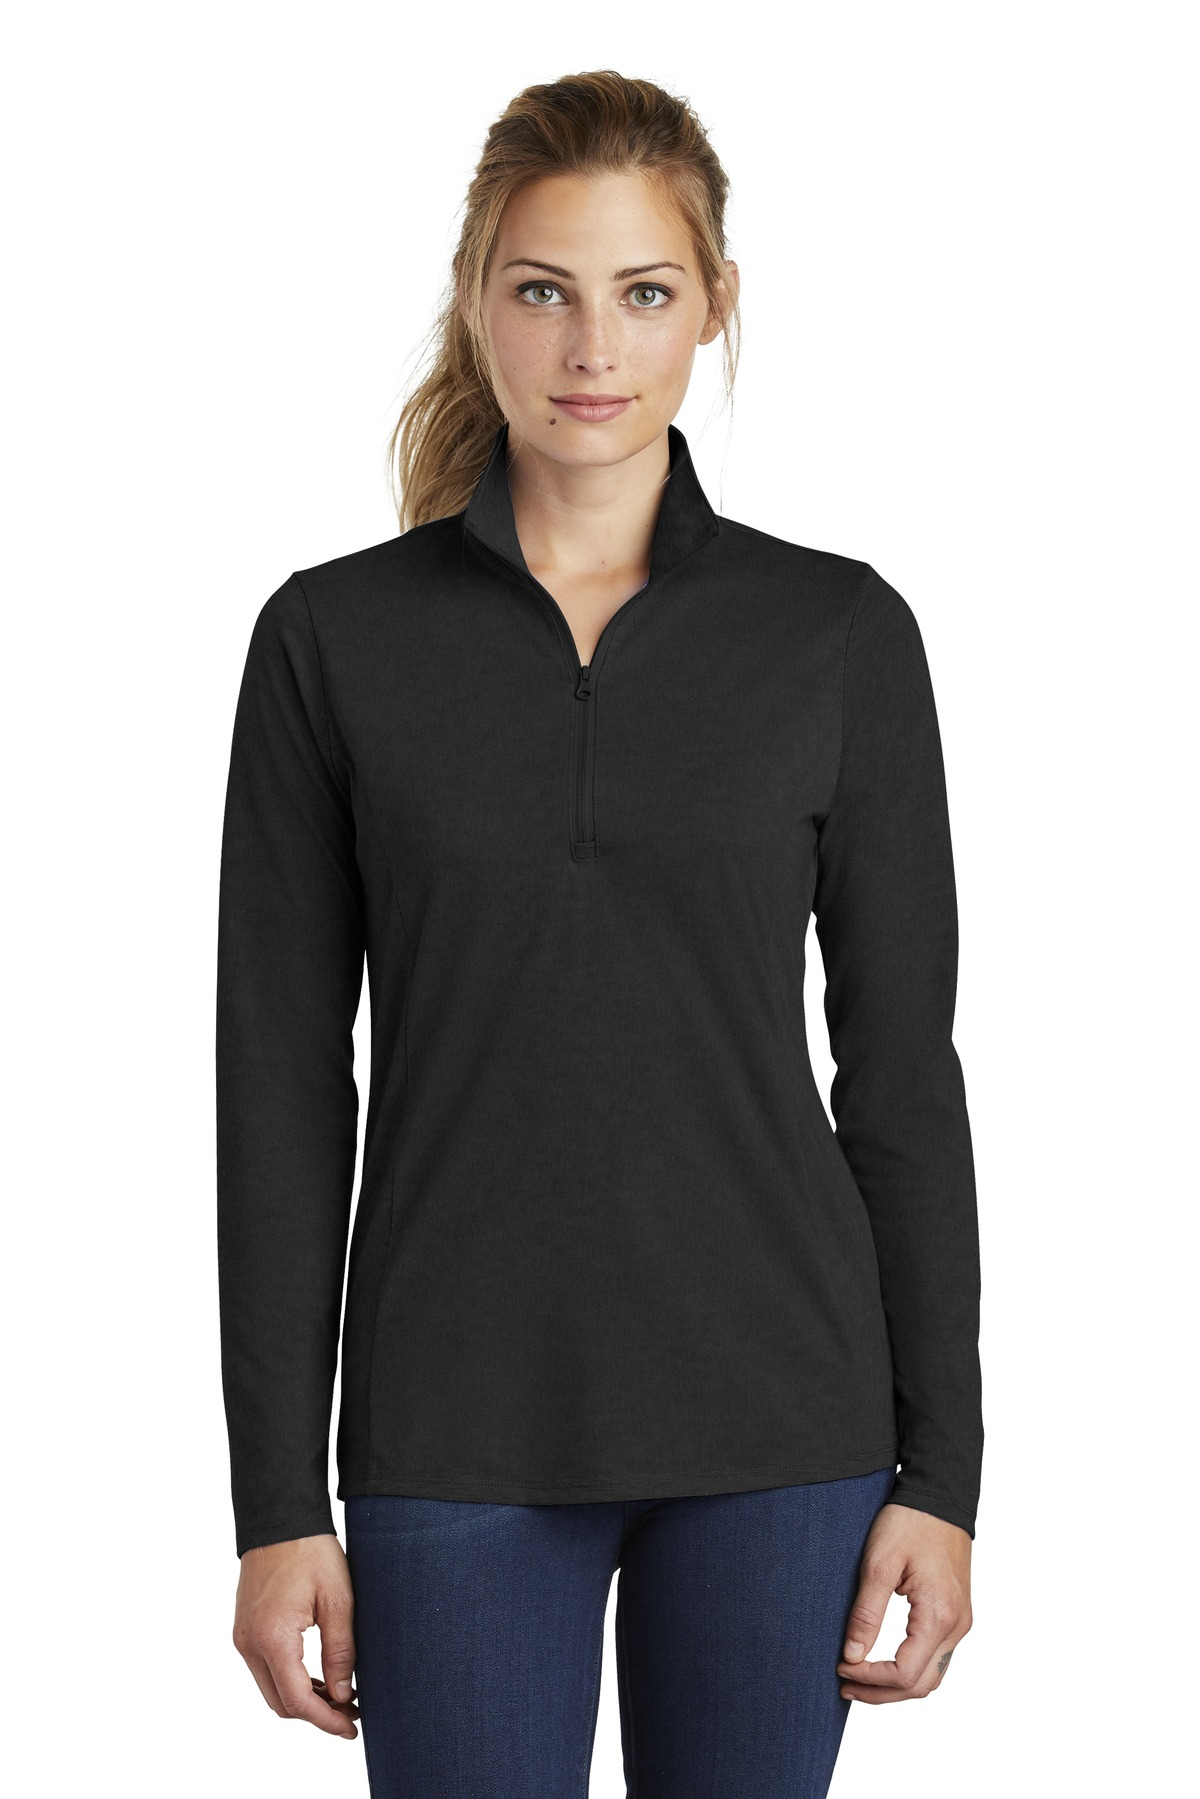 1558e2cf ... Sport-Tek ® Ladies PosiCharge ® Tri-Blend Wicking 1/4-Zip Pullover.  LST407. Previous; Next